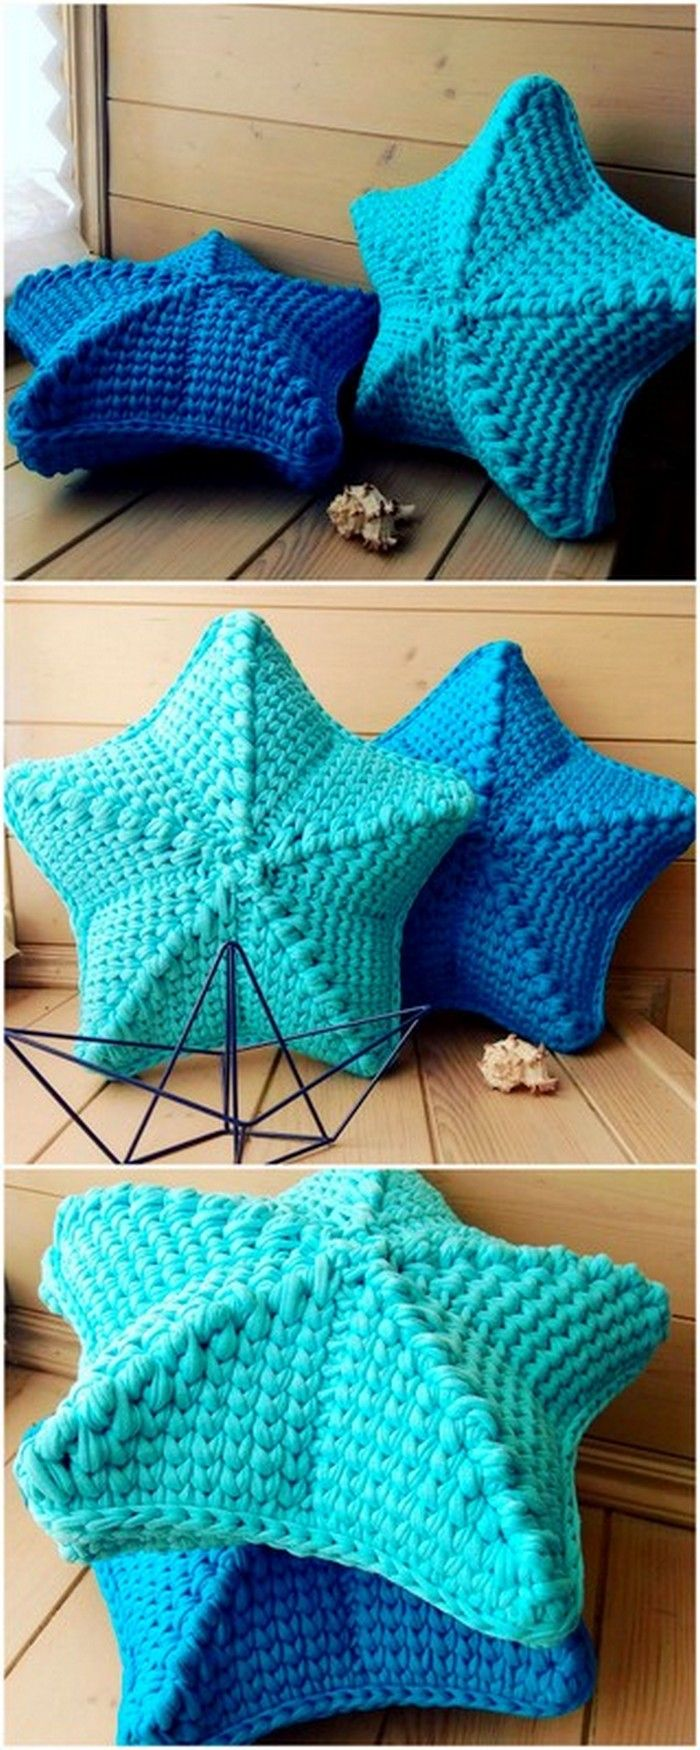 50 Top Trending Crochet Free Pattern Ideas For You And Your Home